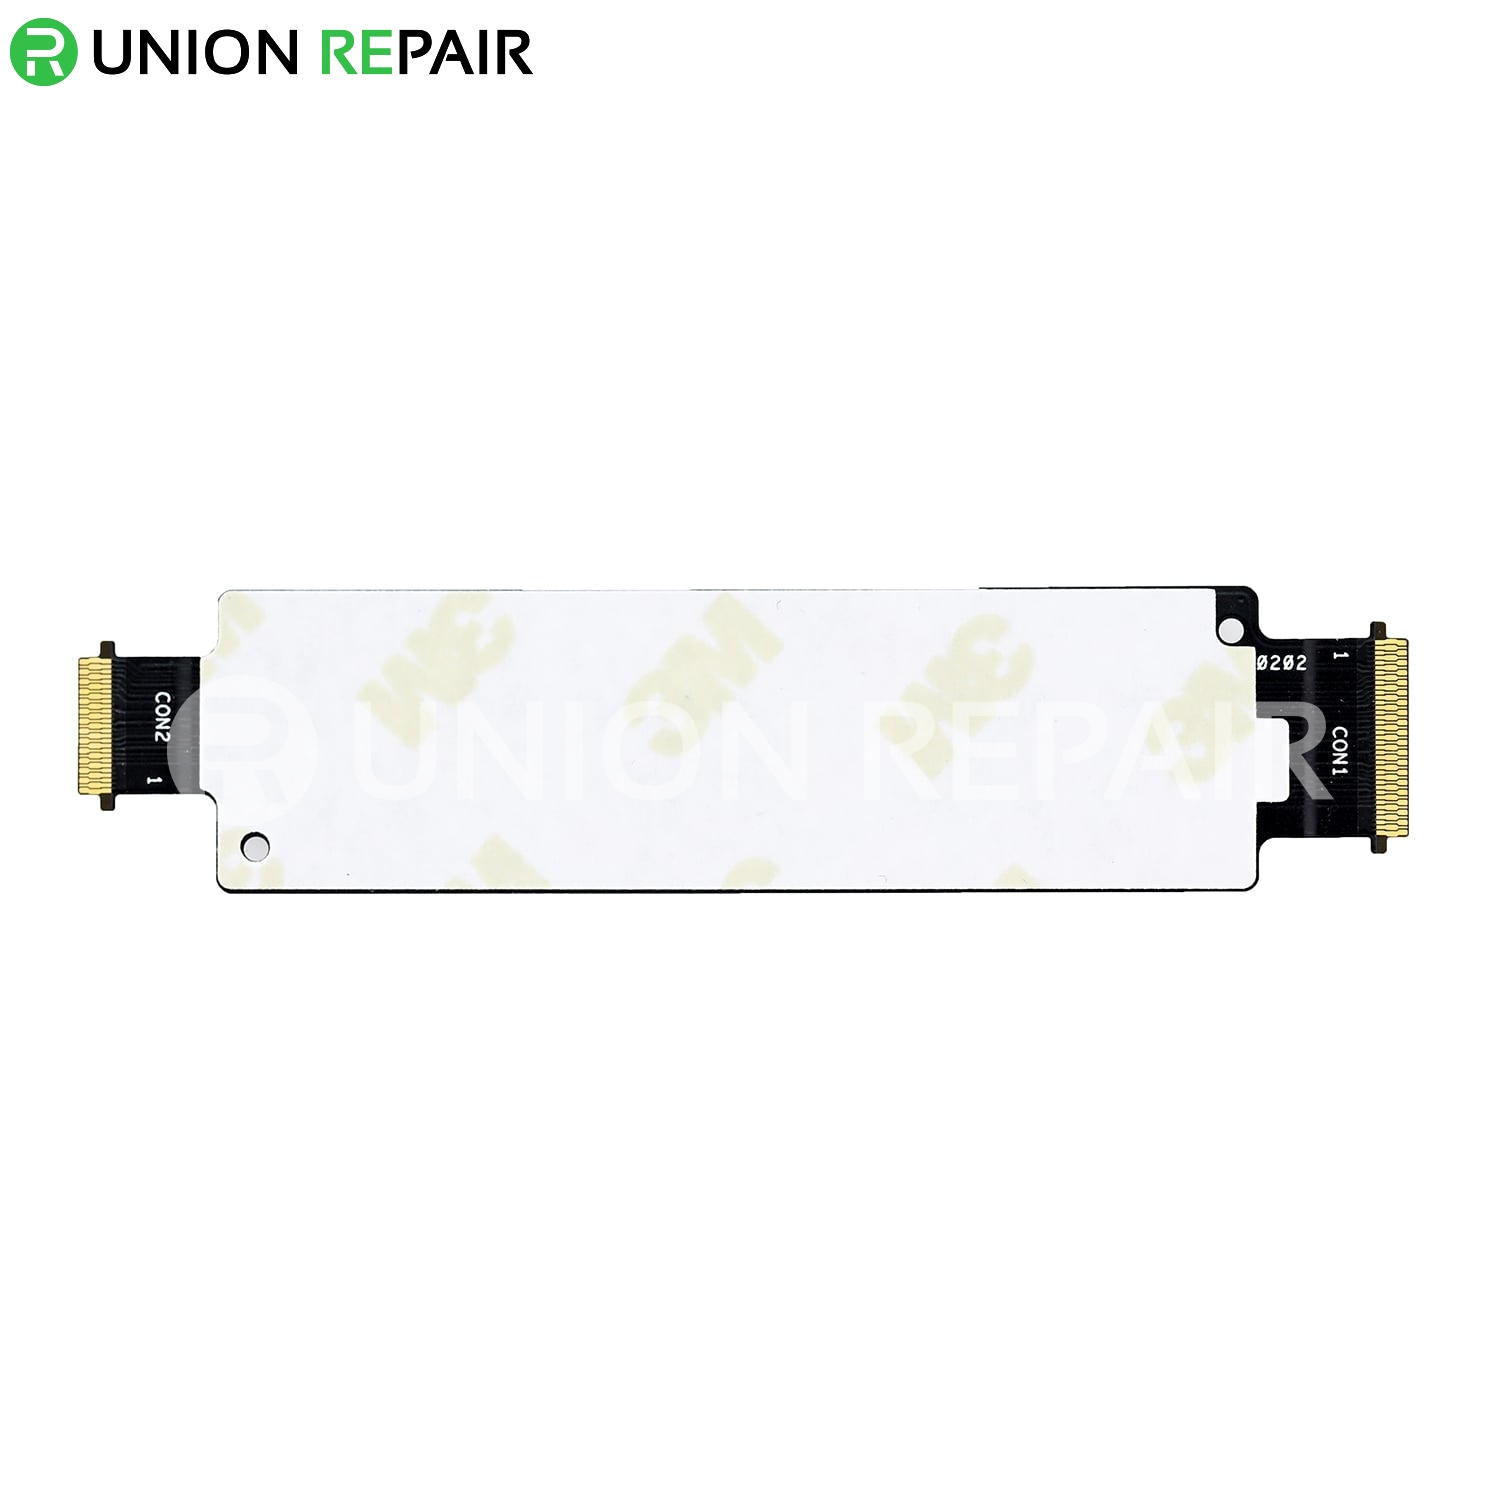 Replacement for Asus Zenfone 5 A500CG Single Sim Card Slot